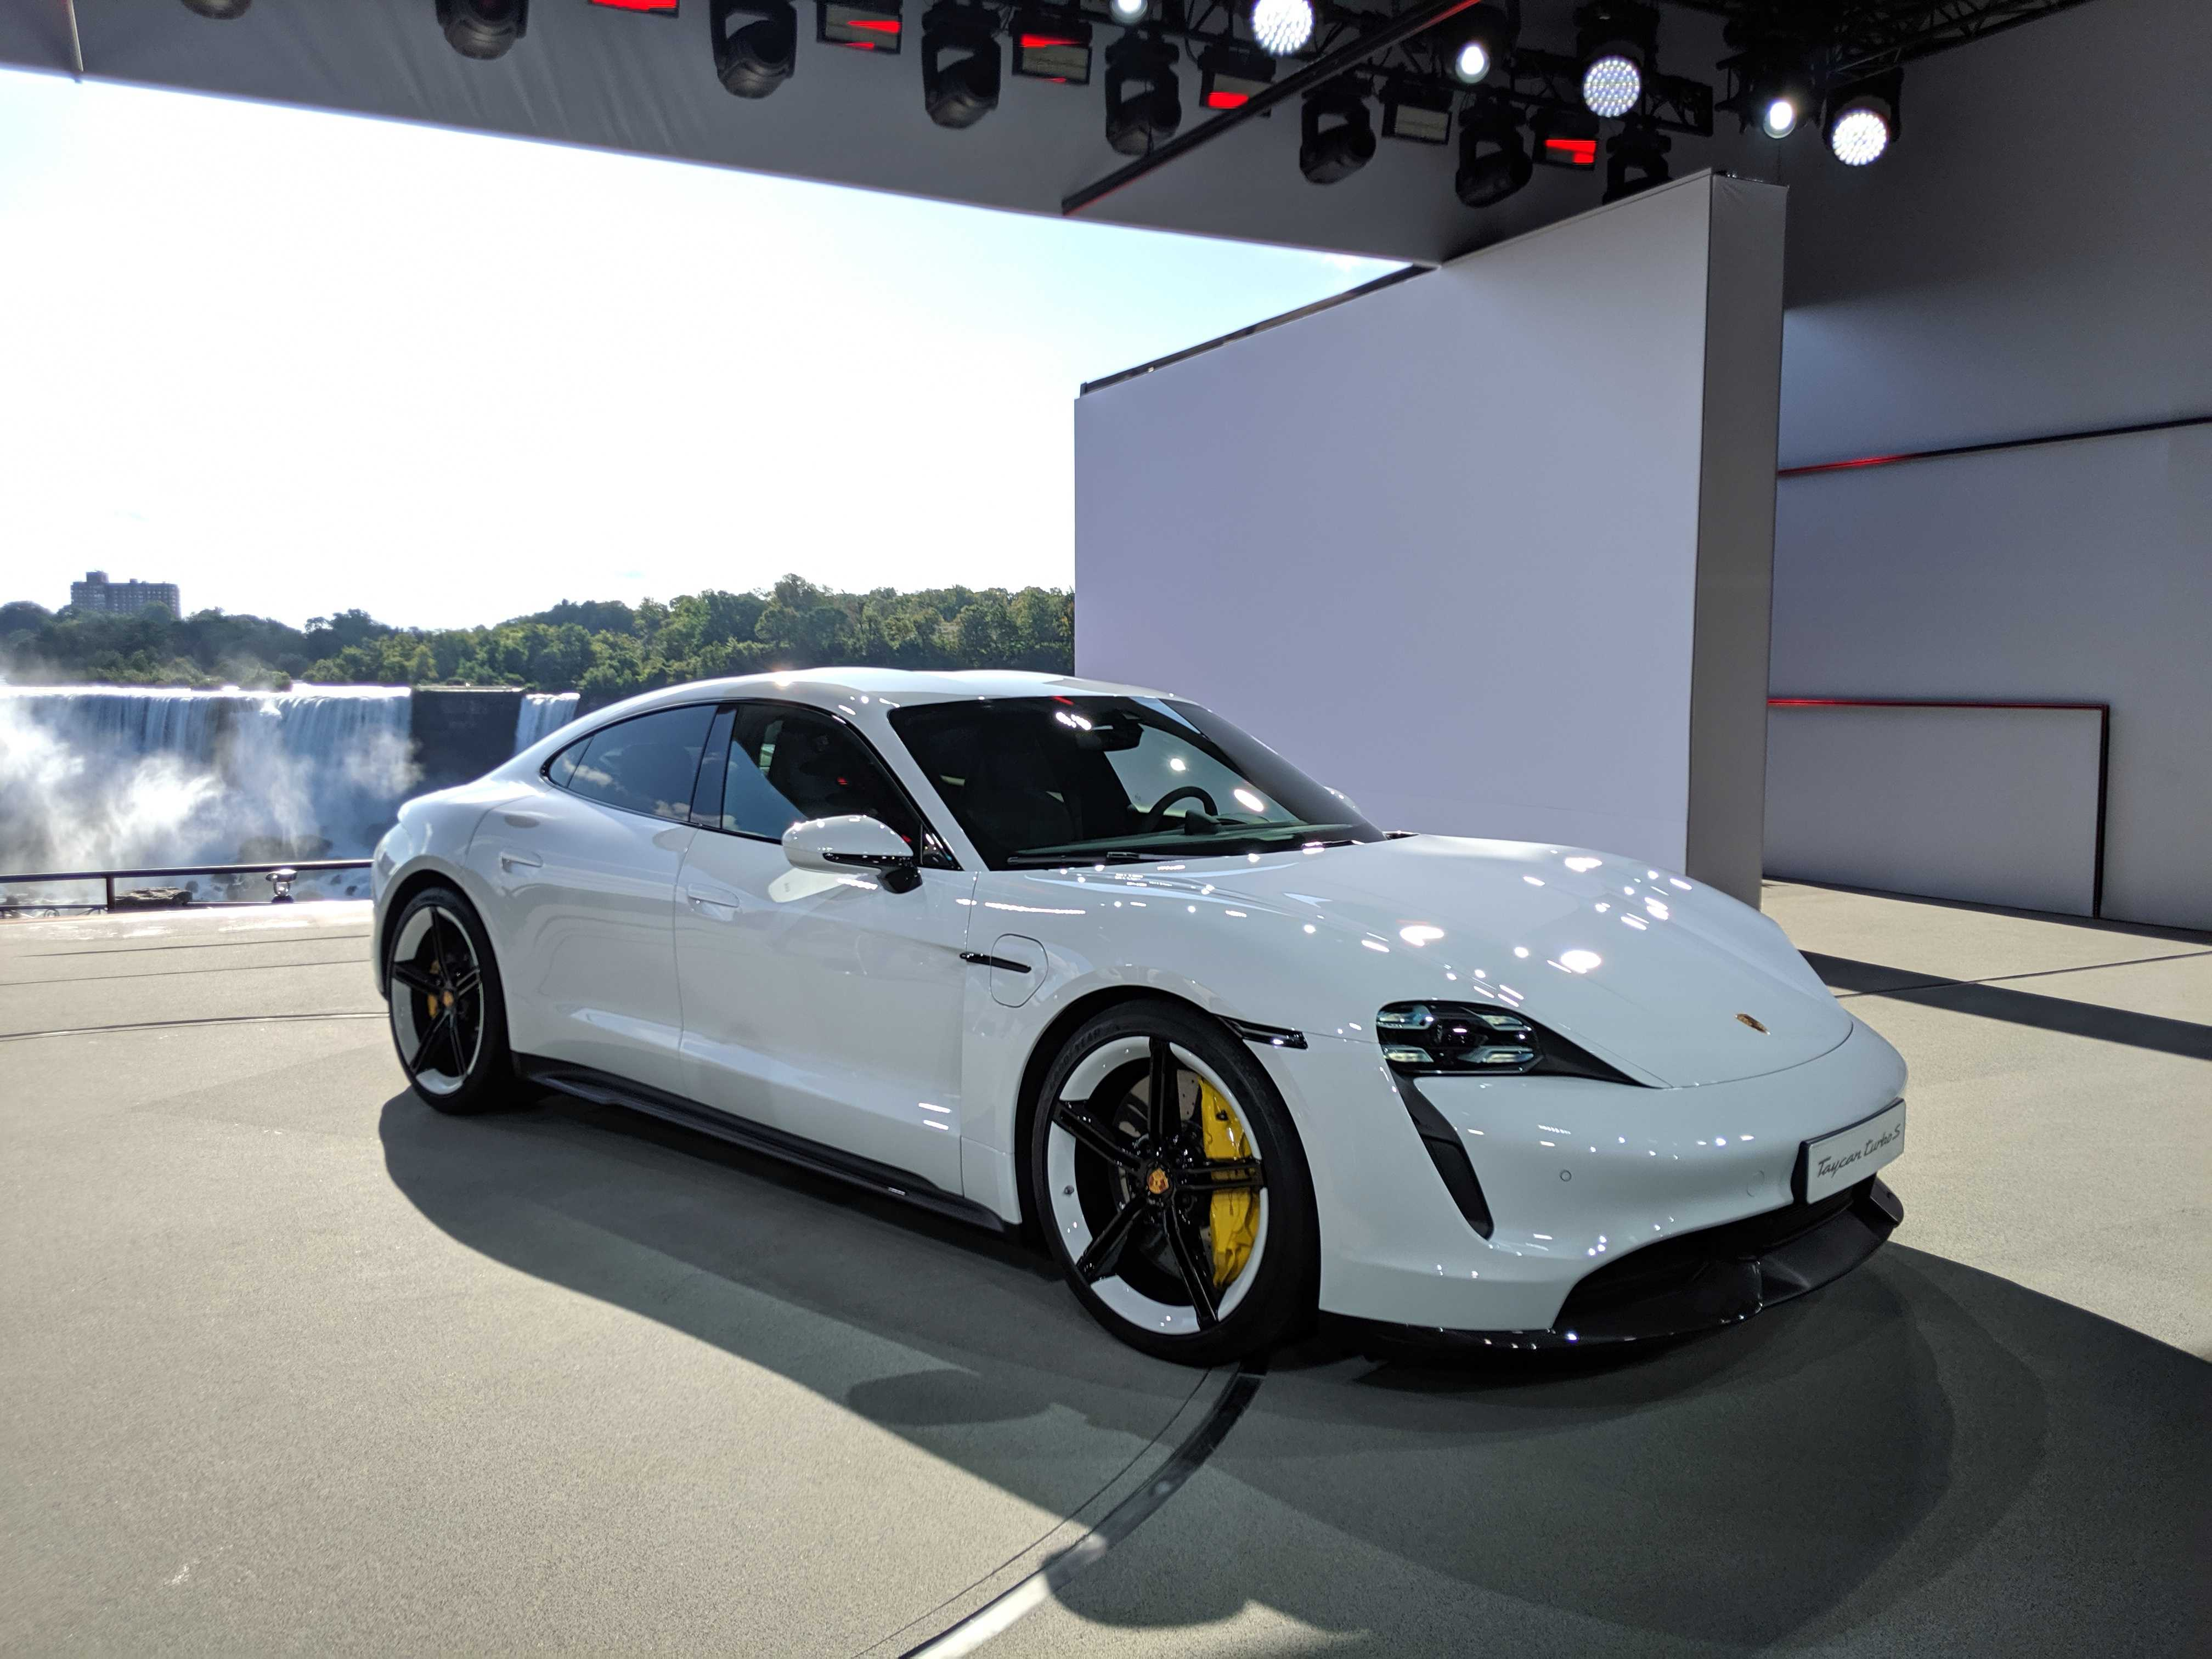 Porsche unveils the $150,900 Taycan Turbo electric sedan